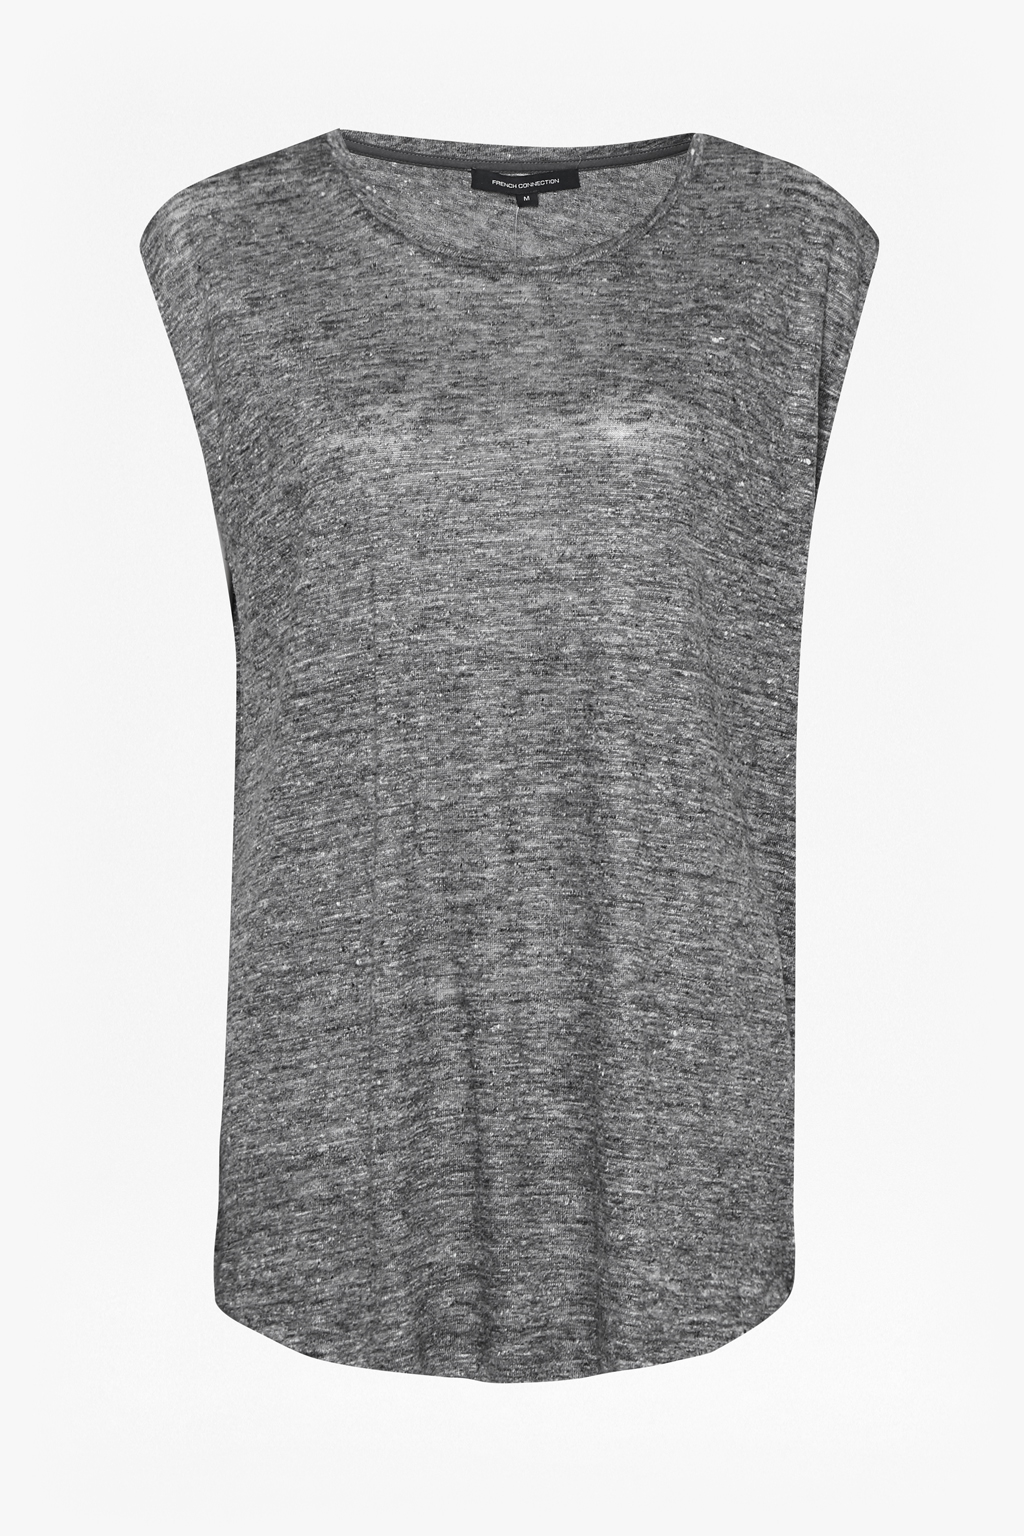 French Connection Laurel Linen Marl T Shirt In Gray Lyst